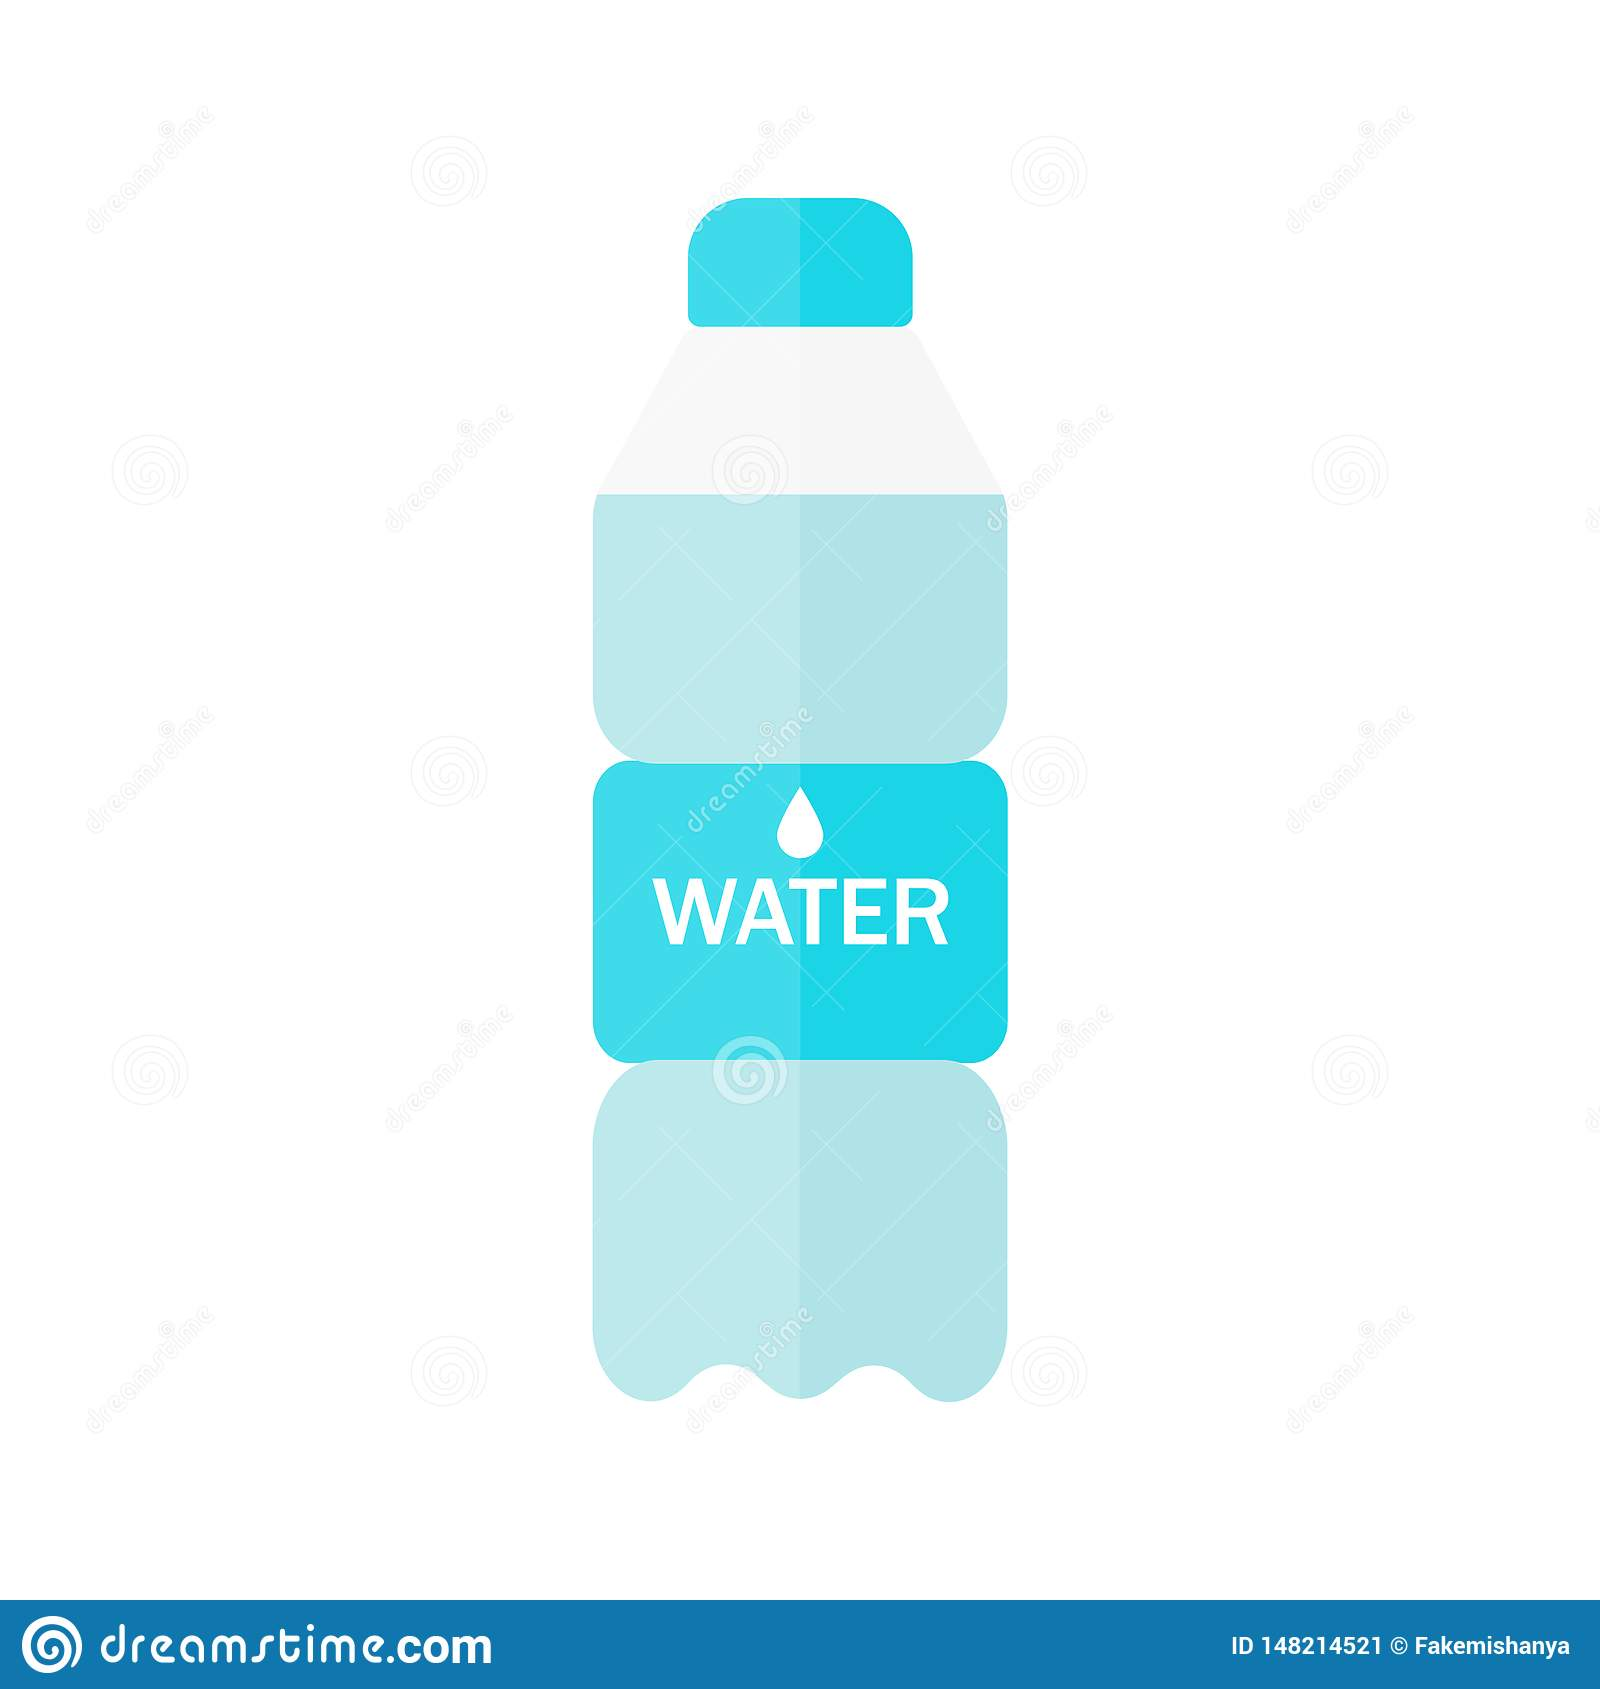 Bottle of water icon in flat style isolated on blue background. Vector illustration.